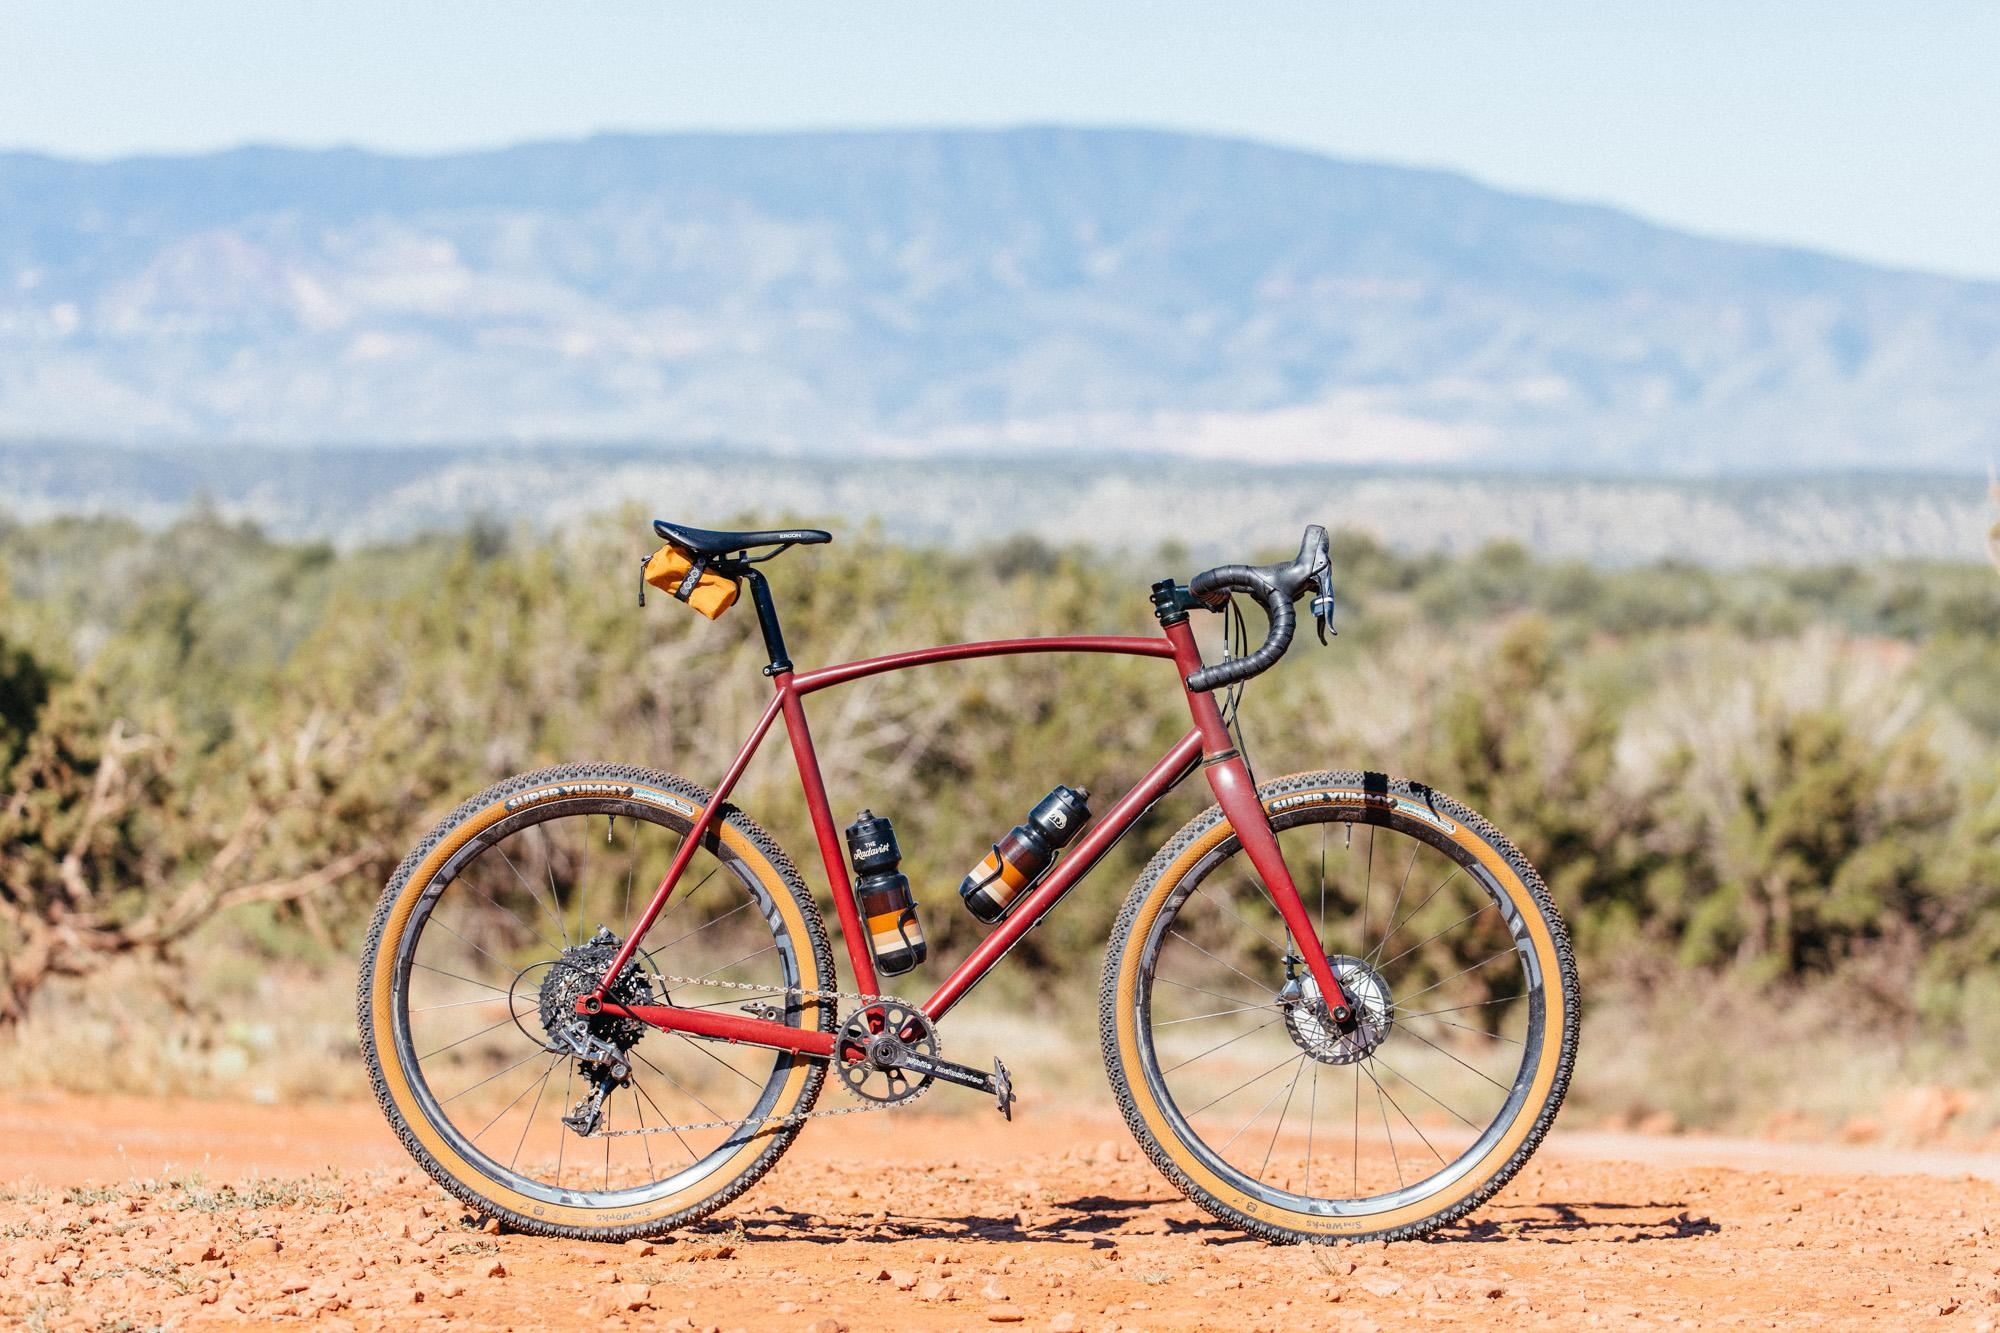 My Manzanita Sklar 27.5 All Road Is Meaner Now with Crust Towel Rack Bars